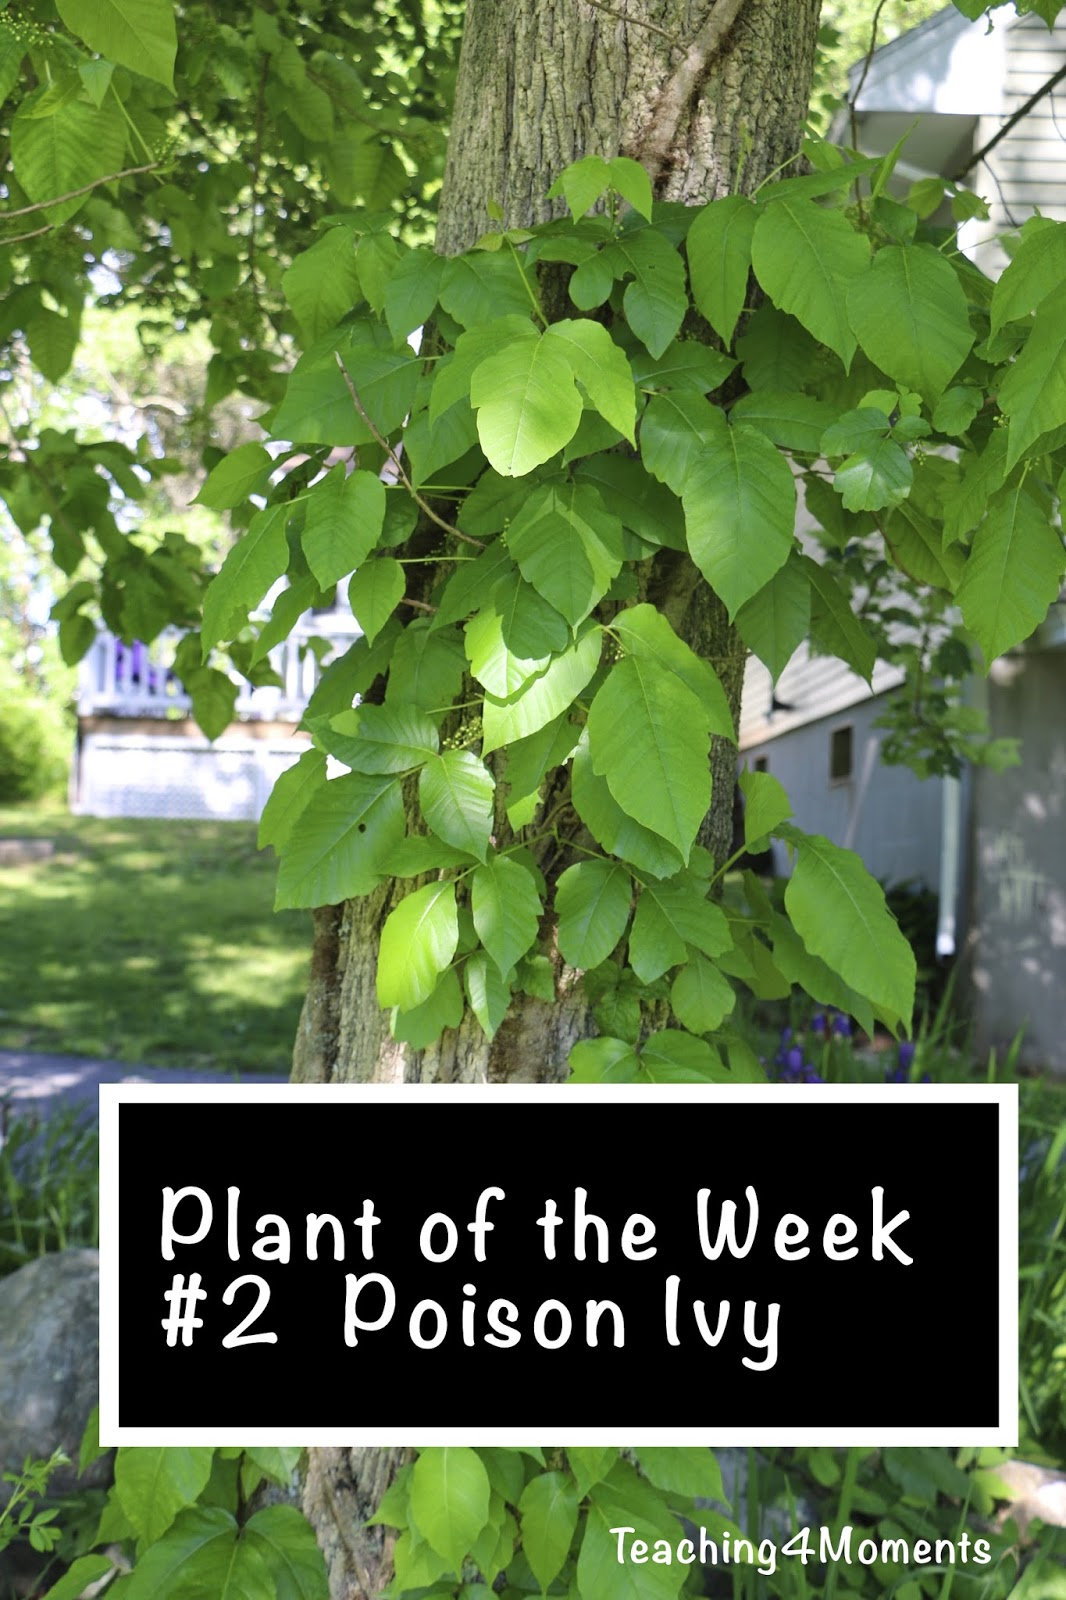 Teaching 4 Moments-Plant of the week-Poison Ivy